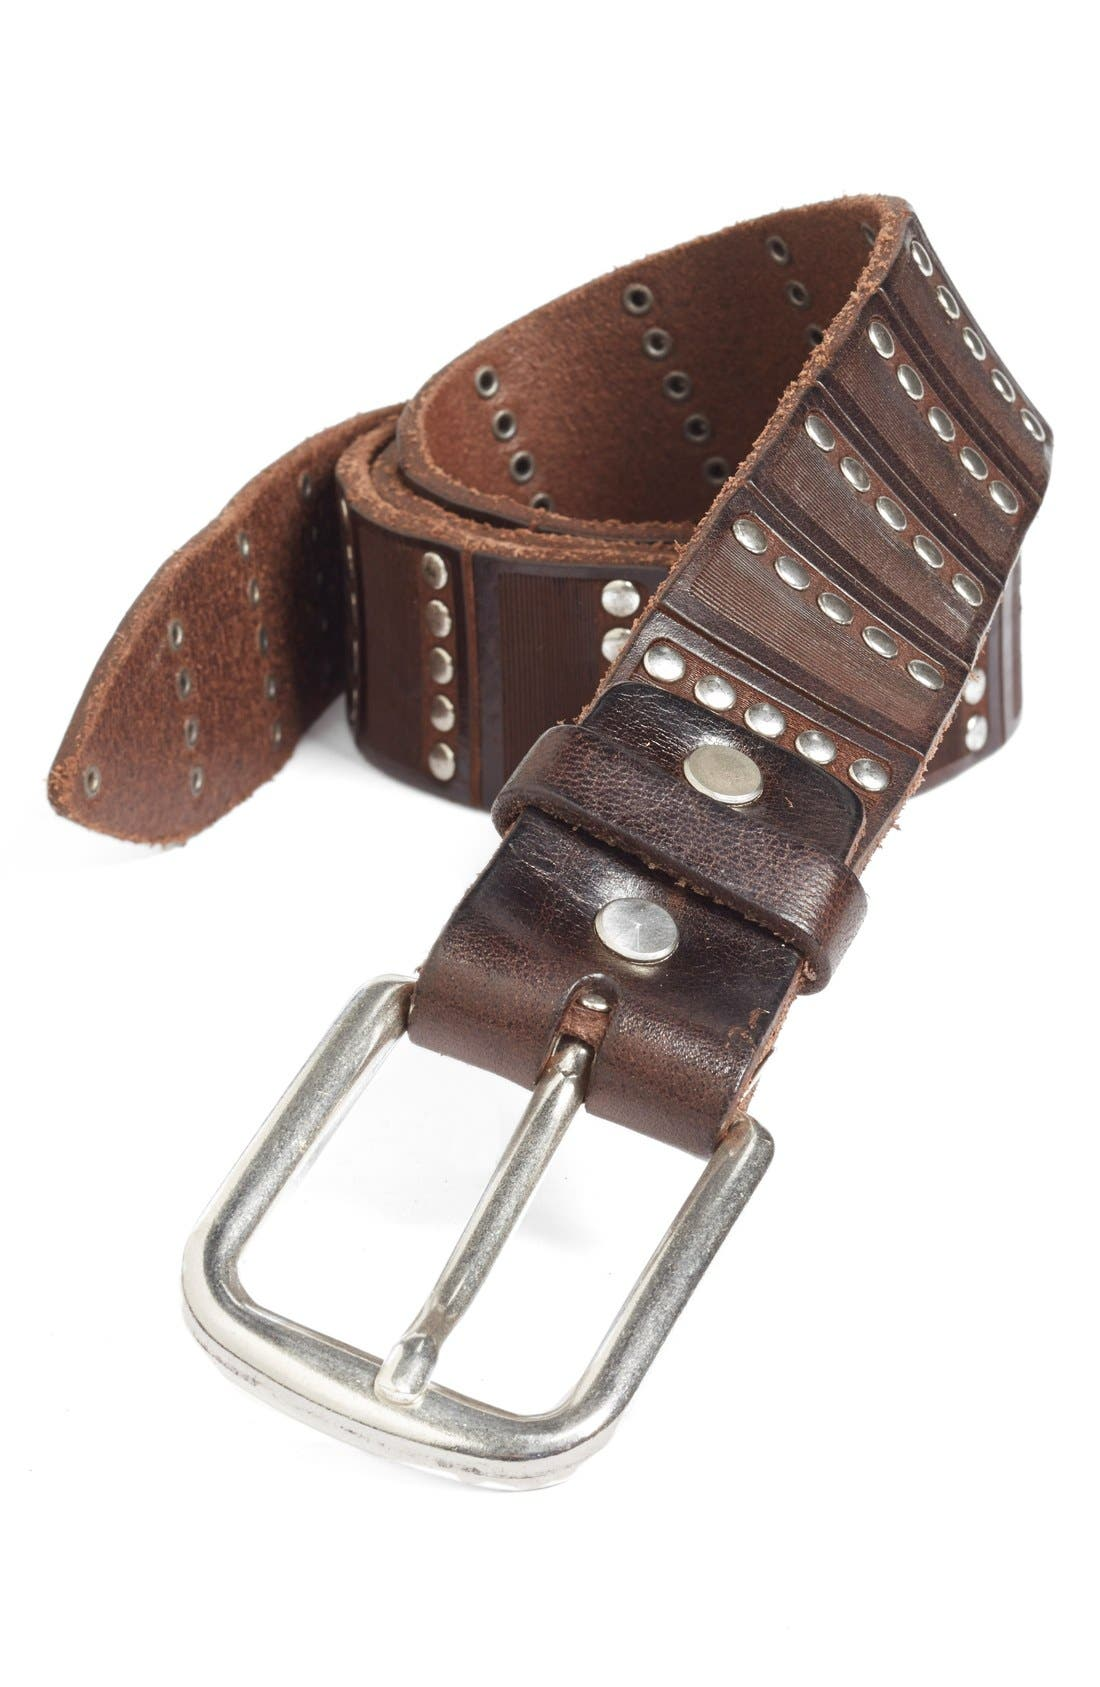 Remo Tulliani 'Santino' Leather Belt